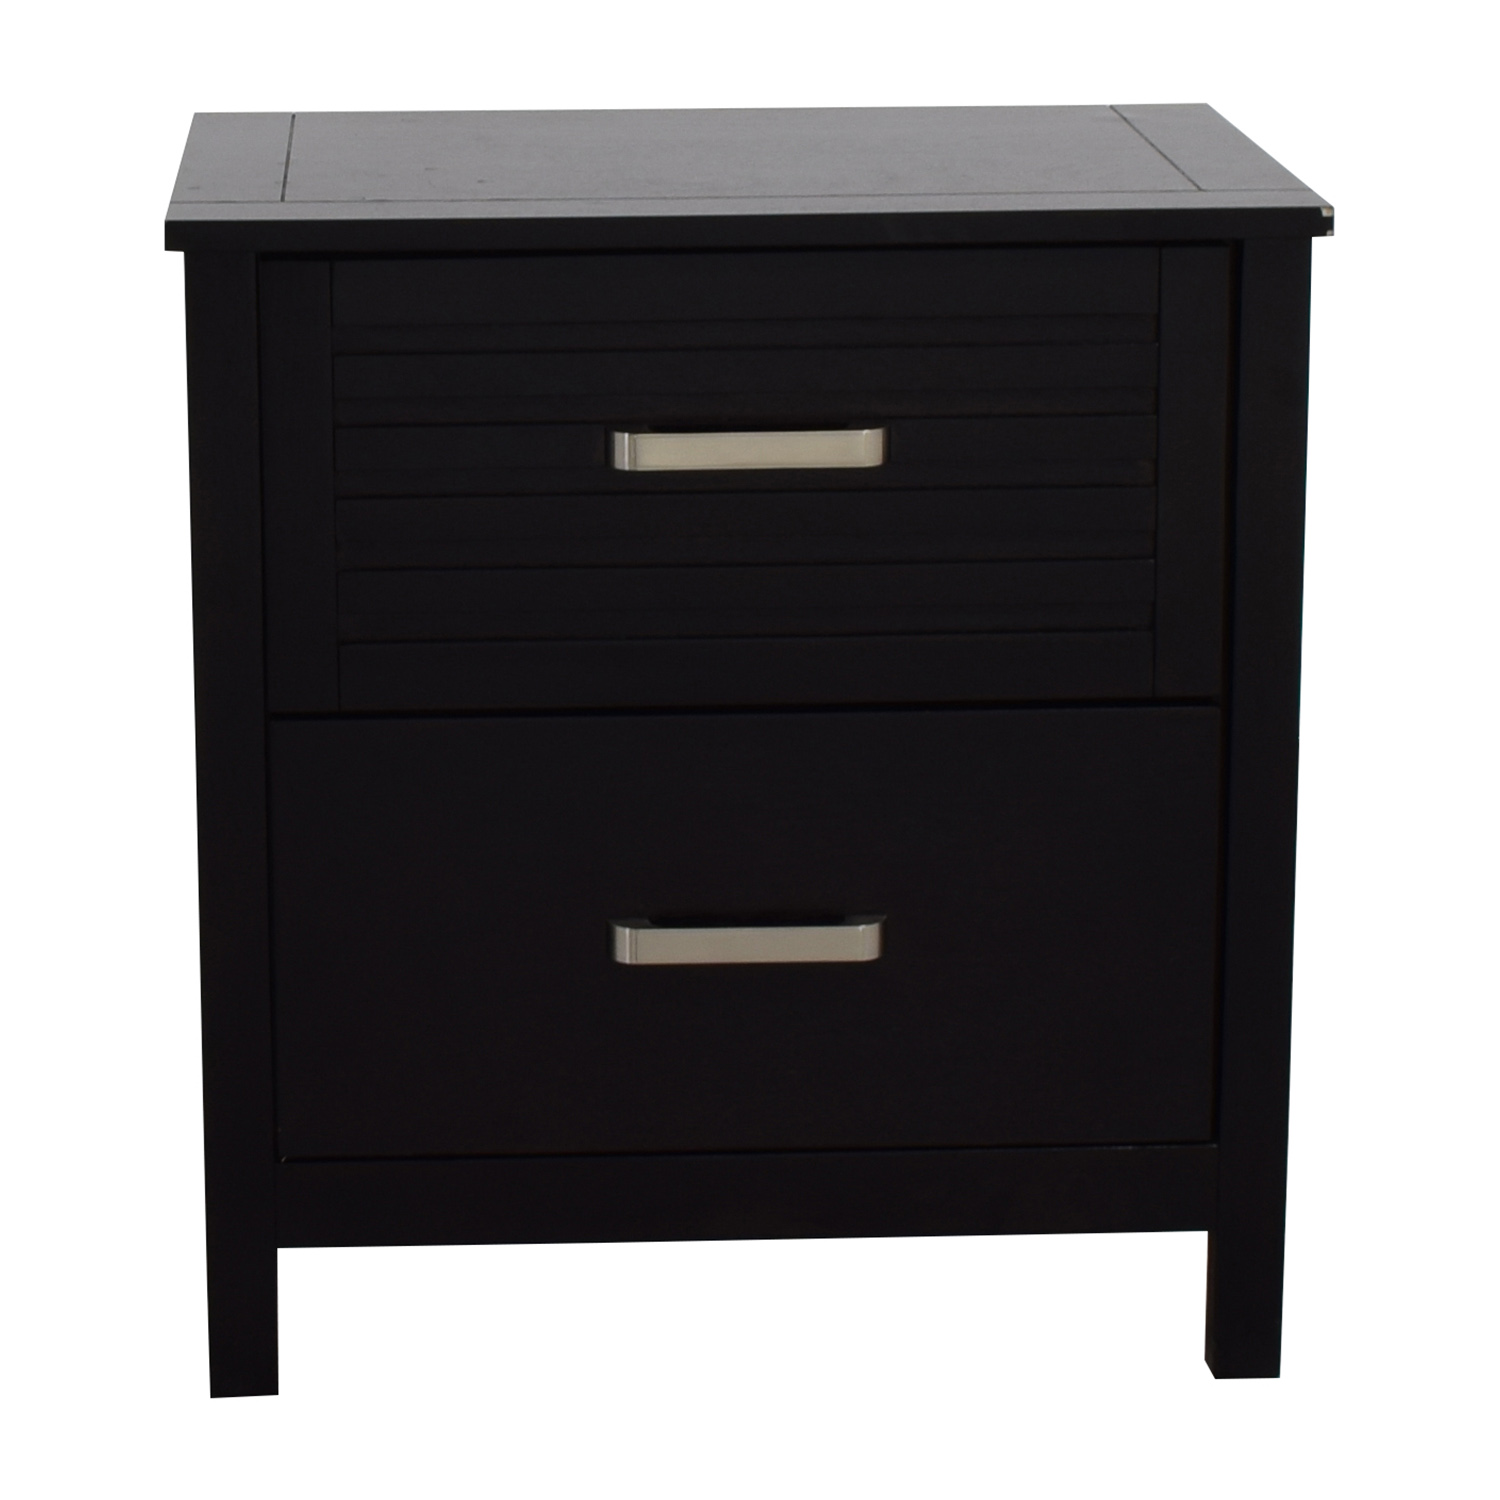 Bobu0027s Furniture Bobu0027s Furniture Dalton Espresso Two Drawer Nightstand Dark  Brown